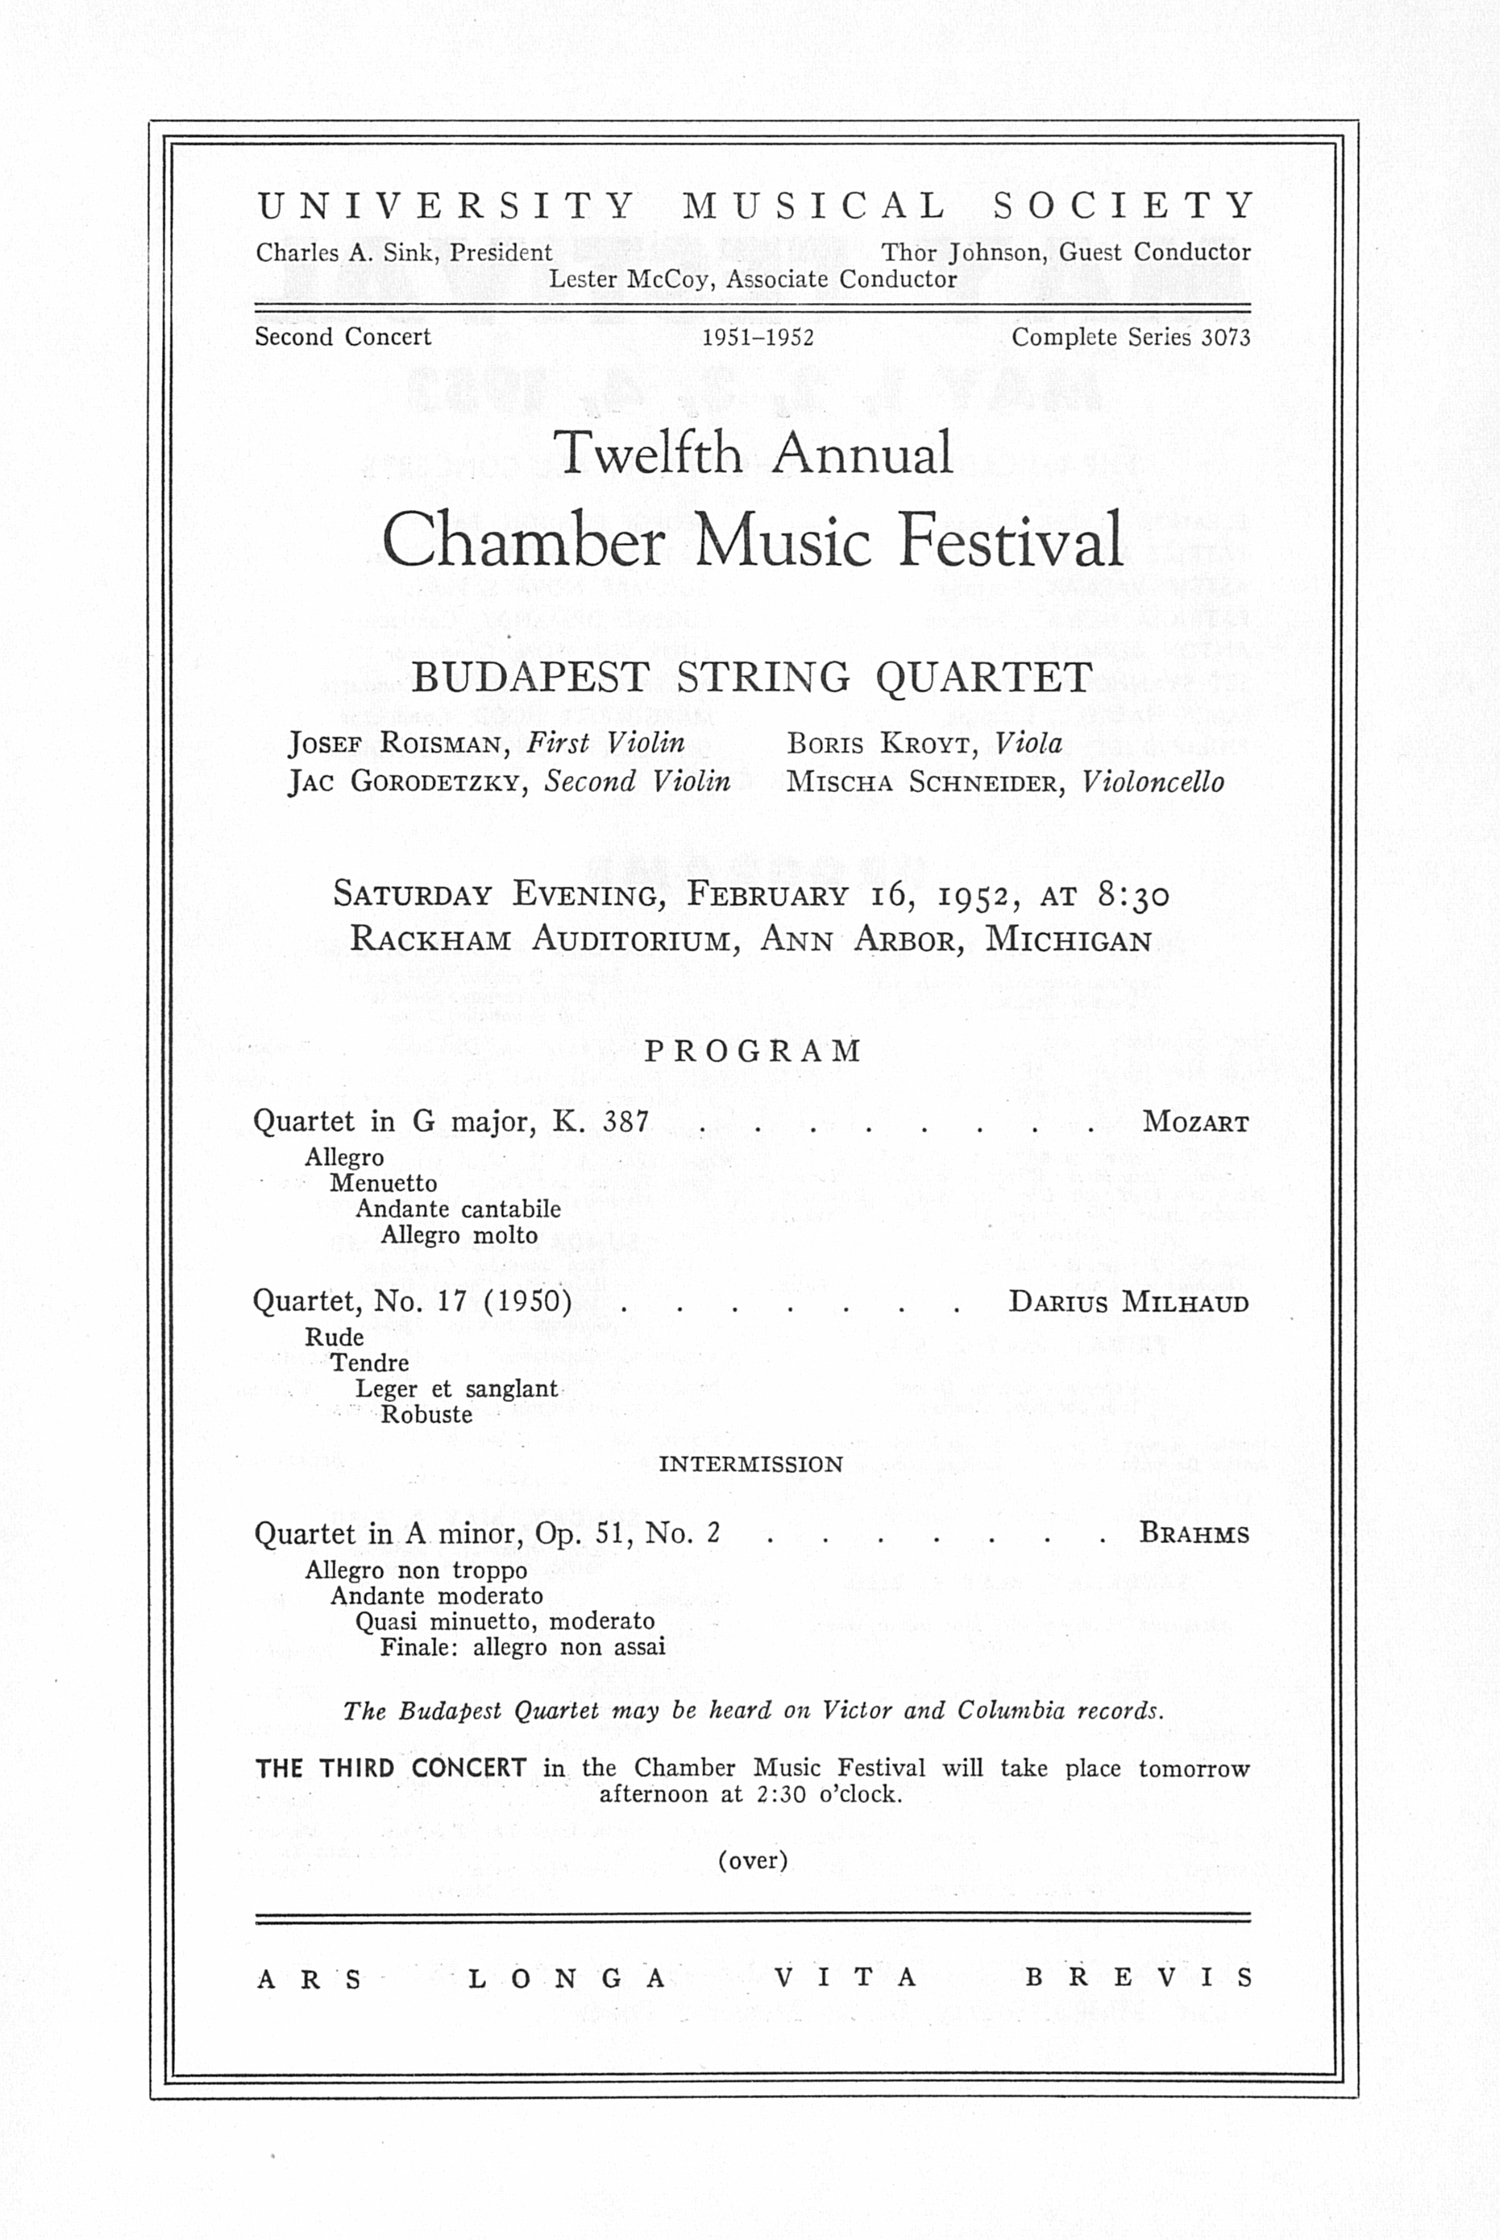 UMS Concert Program, February 16, 1952: Twelfth Annual Chamber Music Festival -- Budapest String Quartet image